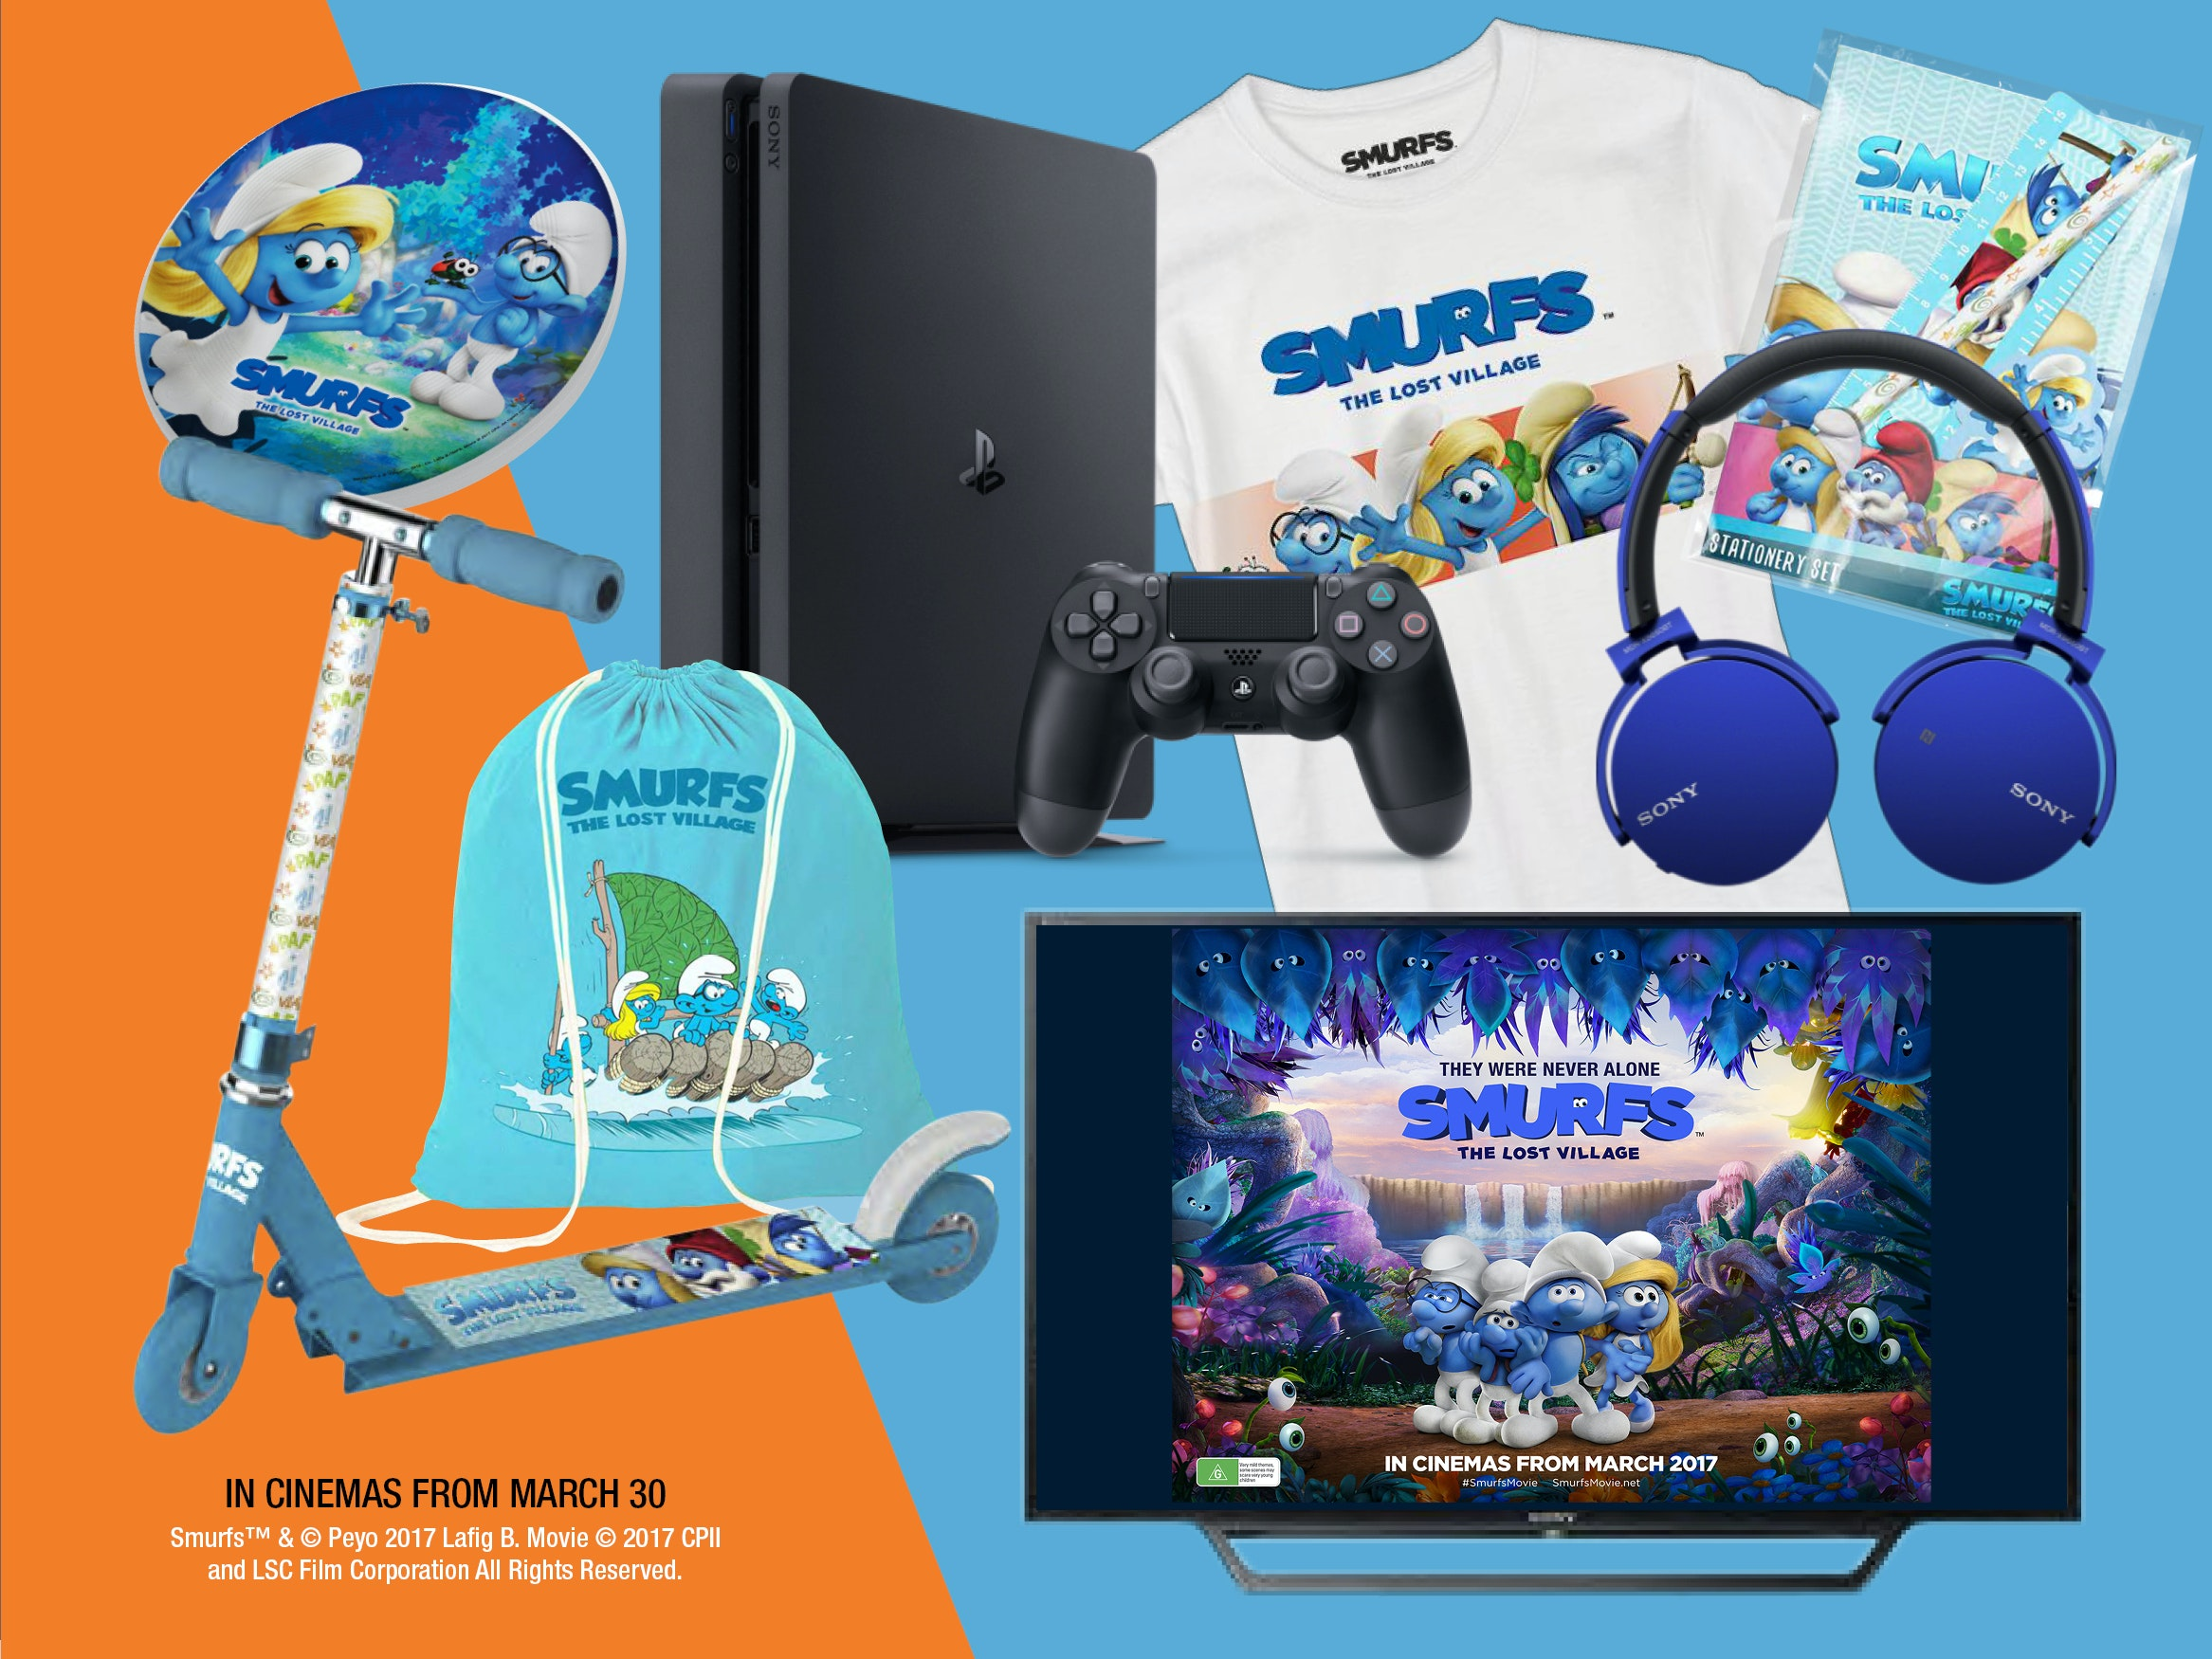 Smurfs TV & Game Pack sweepstakes